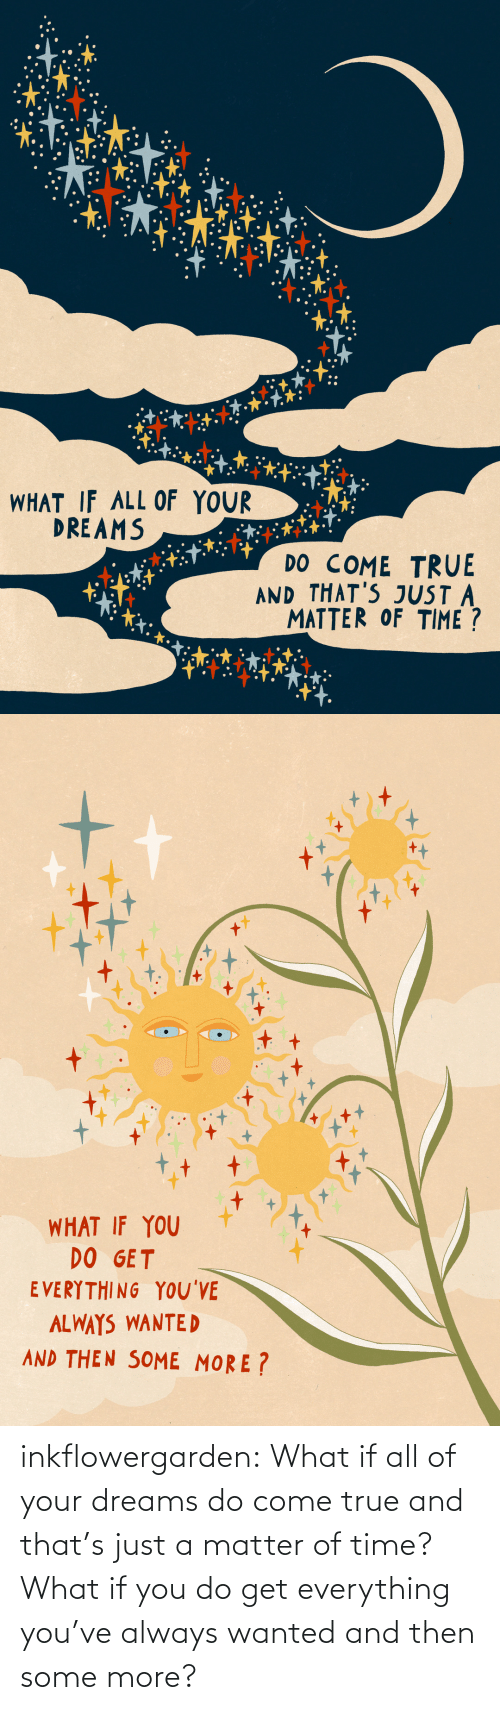 Some More: inkflowergarden: What if all of your dreams do come true and that's just a matter of time? What if you do get everything you've always wanted and then some more?